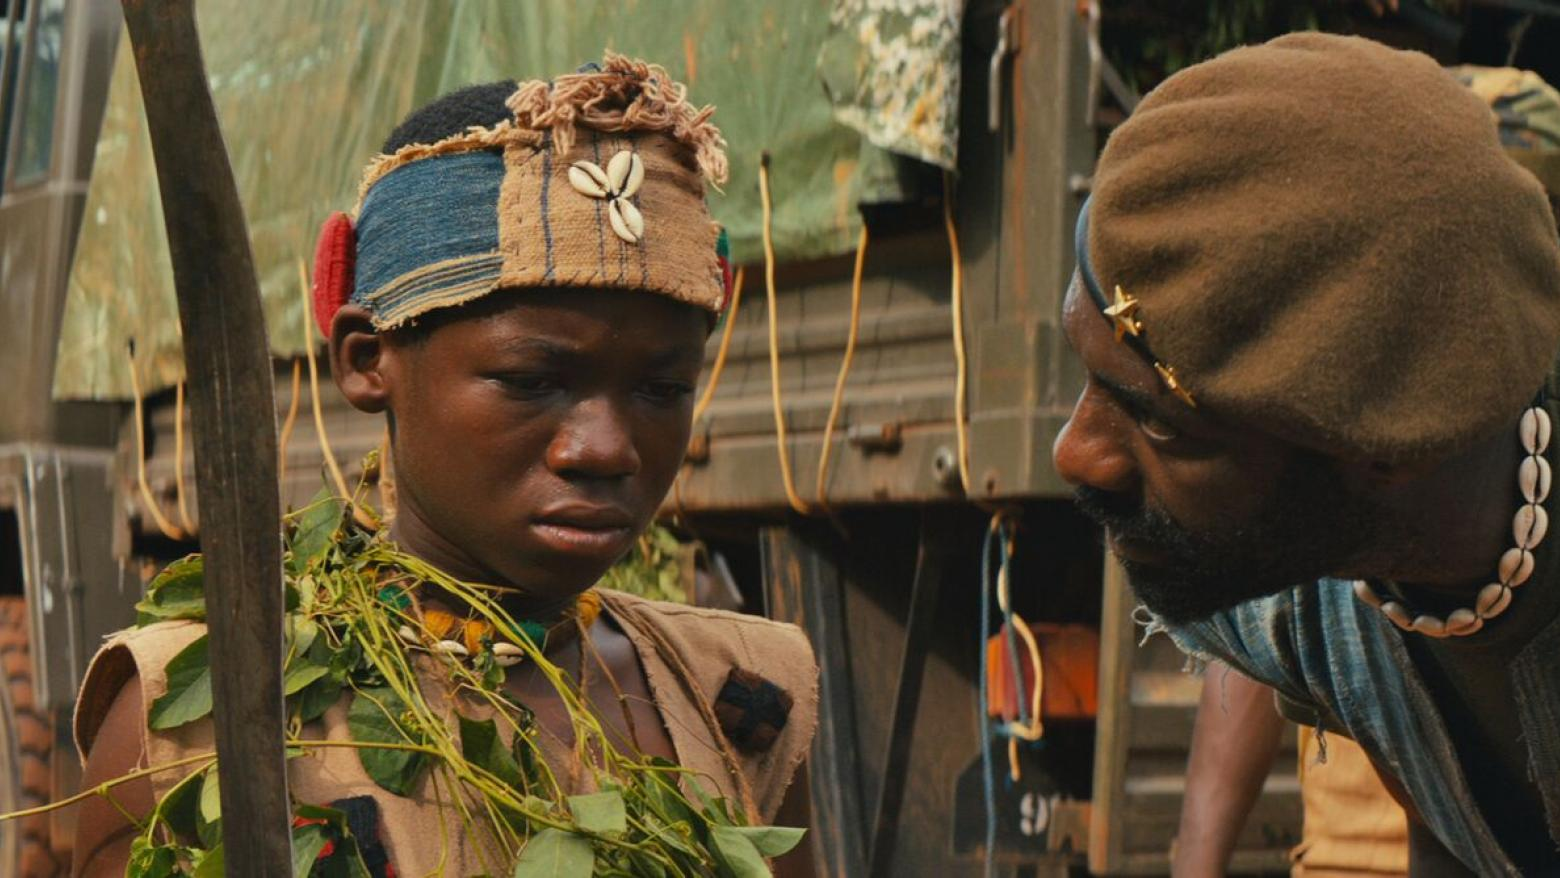 Beasts of No Nation. 2015. USA. Directed by Cary Joji Fukunaga. Courtesy of Netflix. 137 min.